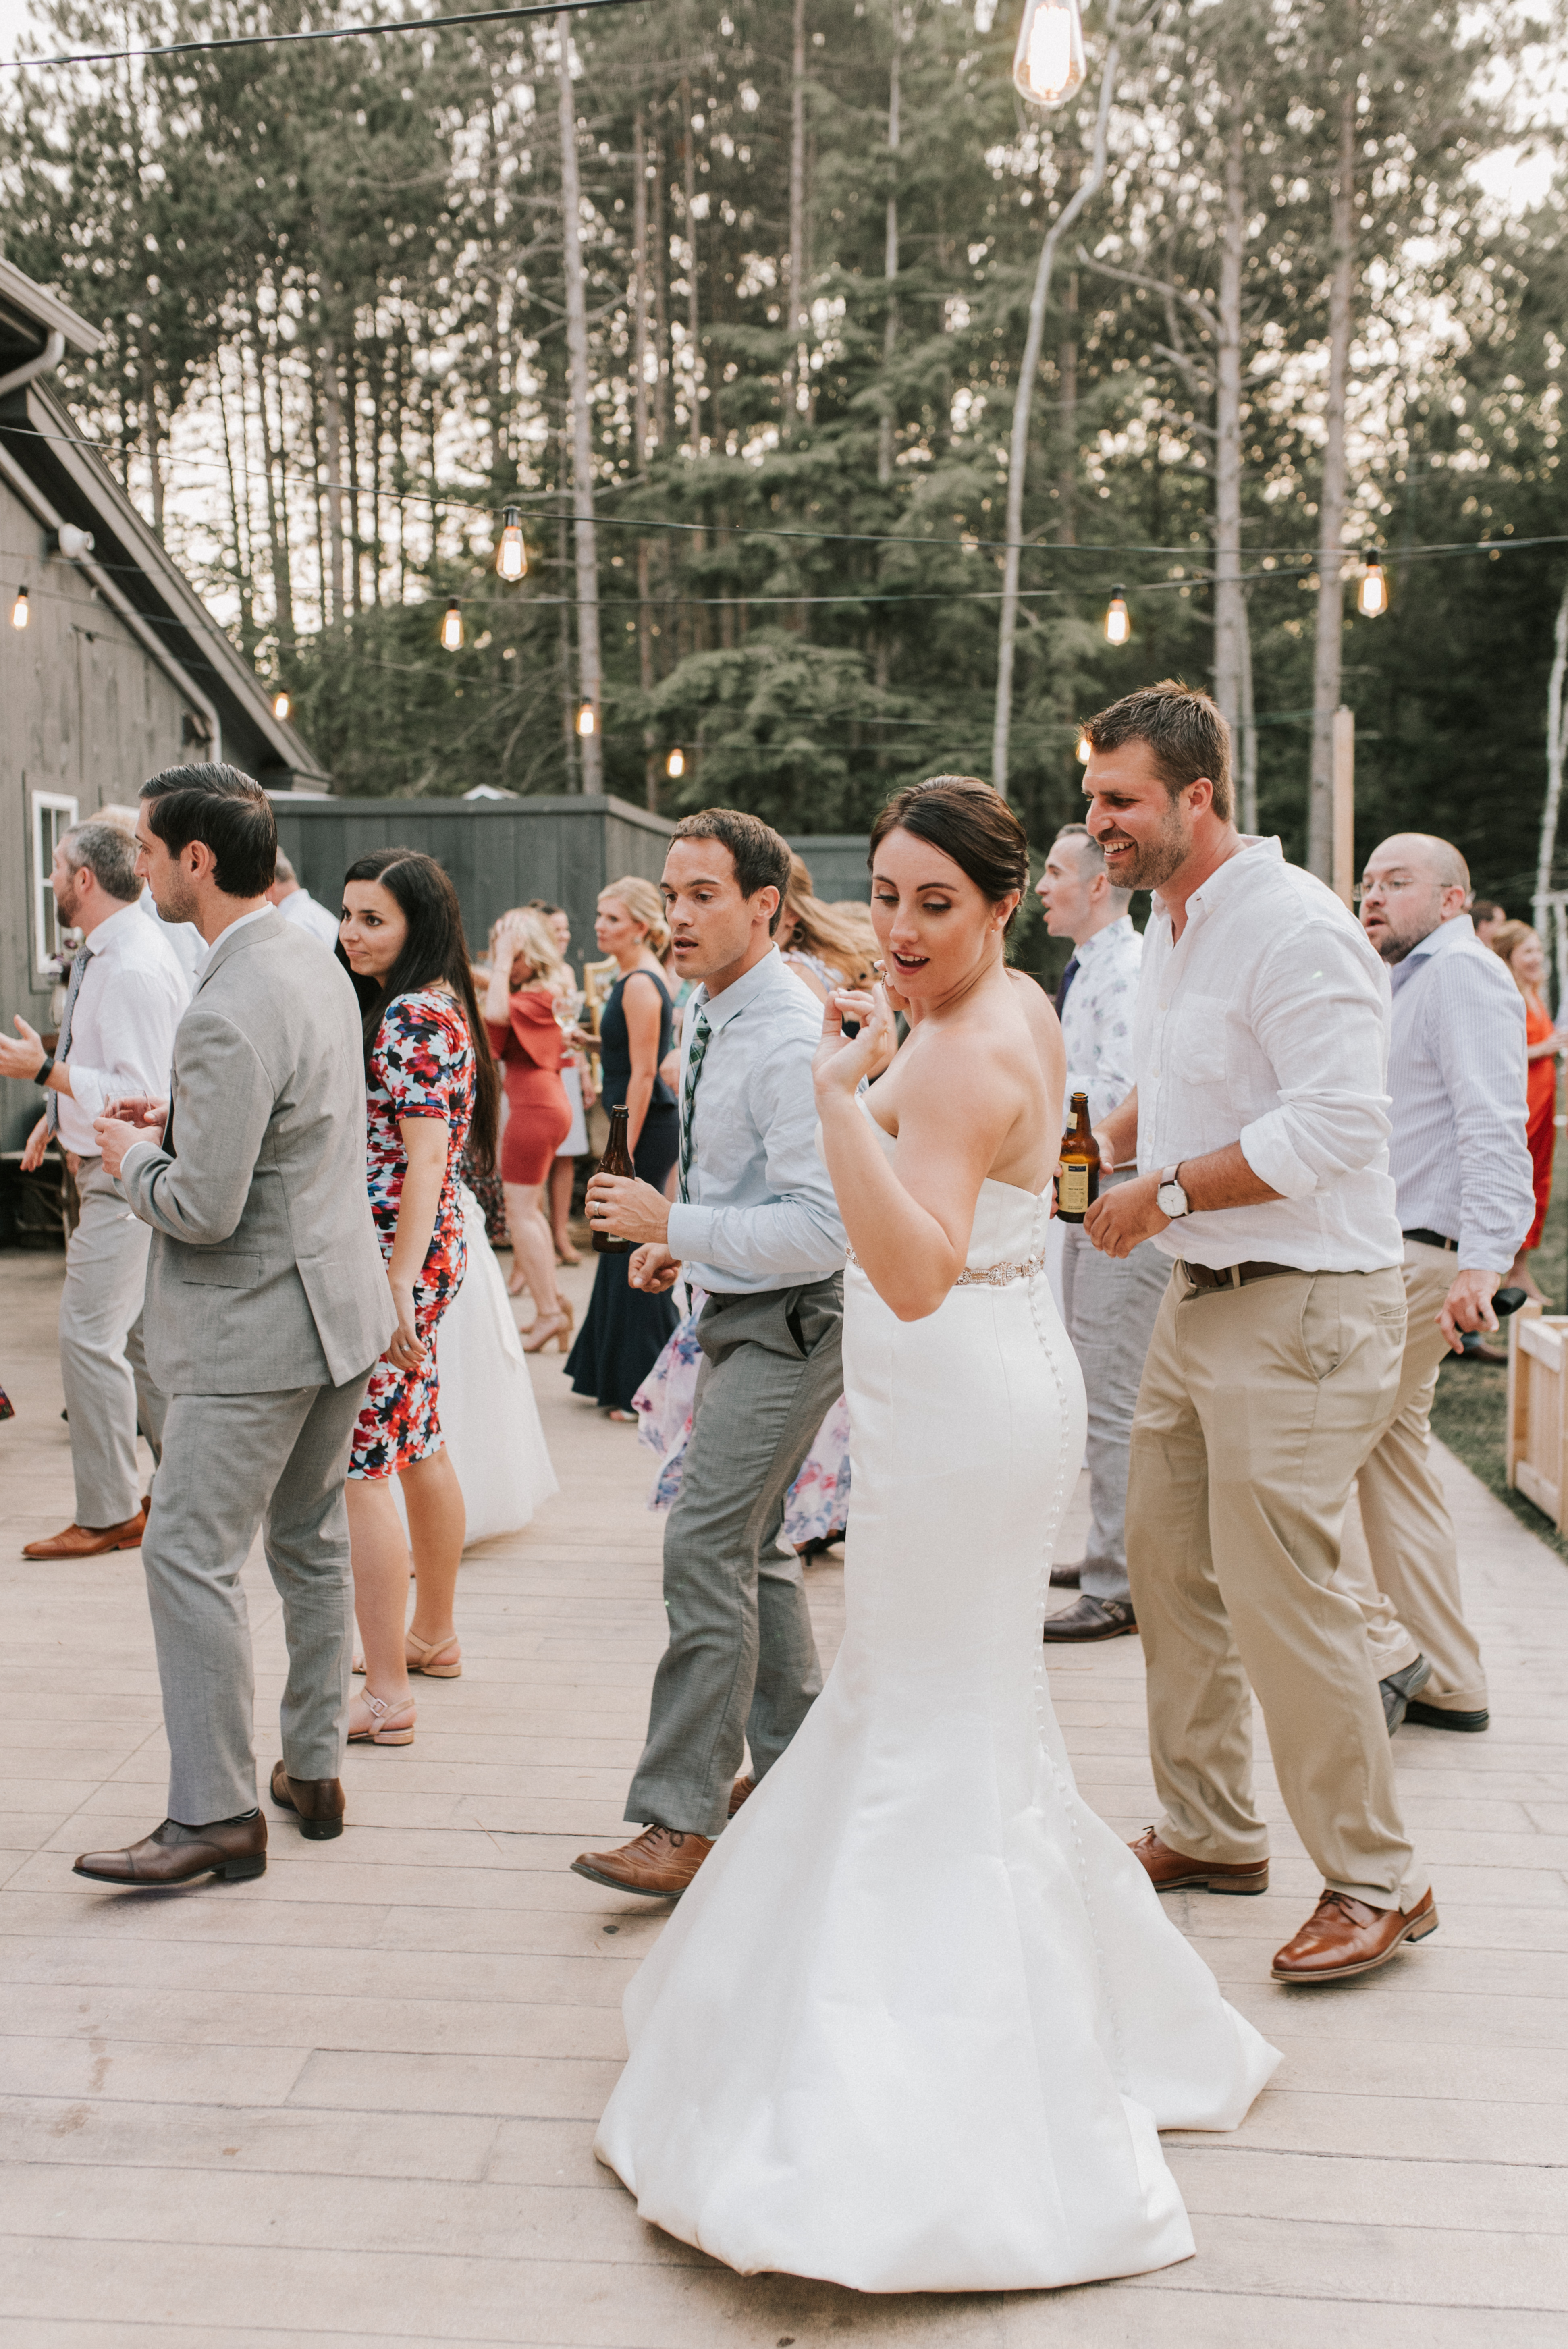 Wedding guests dancing at at Hidden Pond Wedding in Kennebunkport, Maine